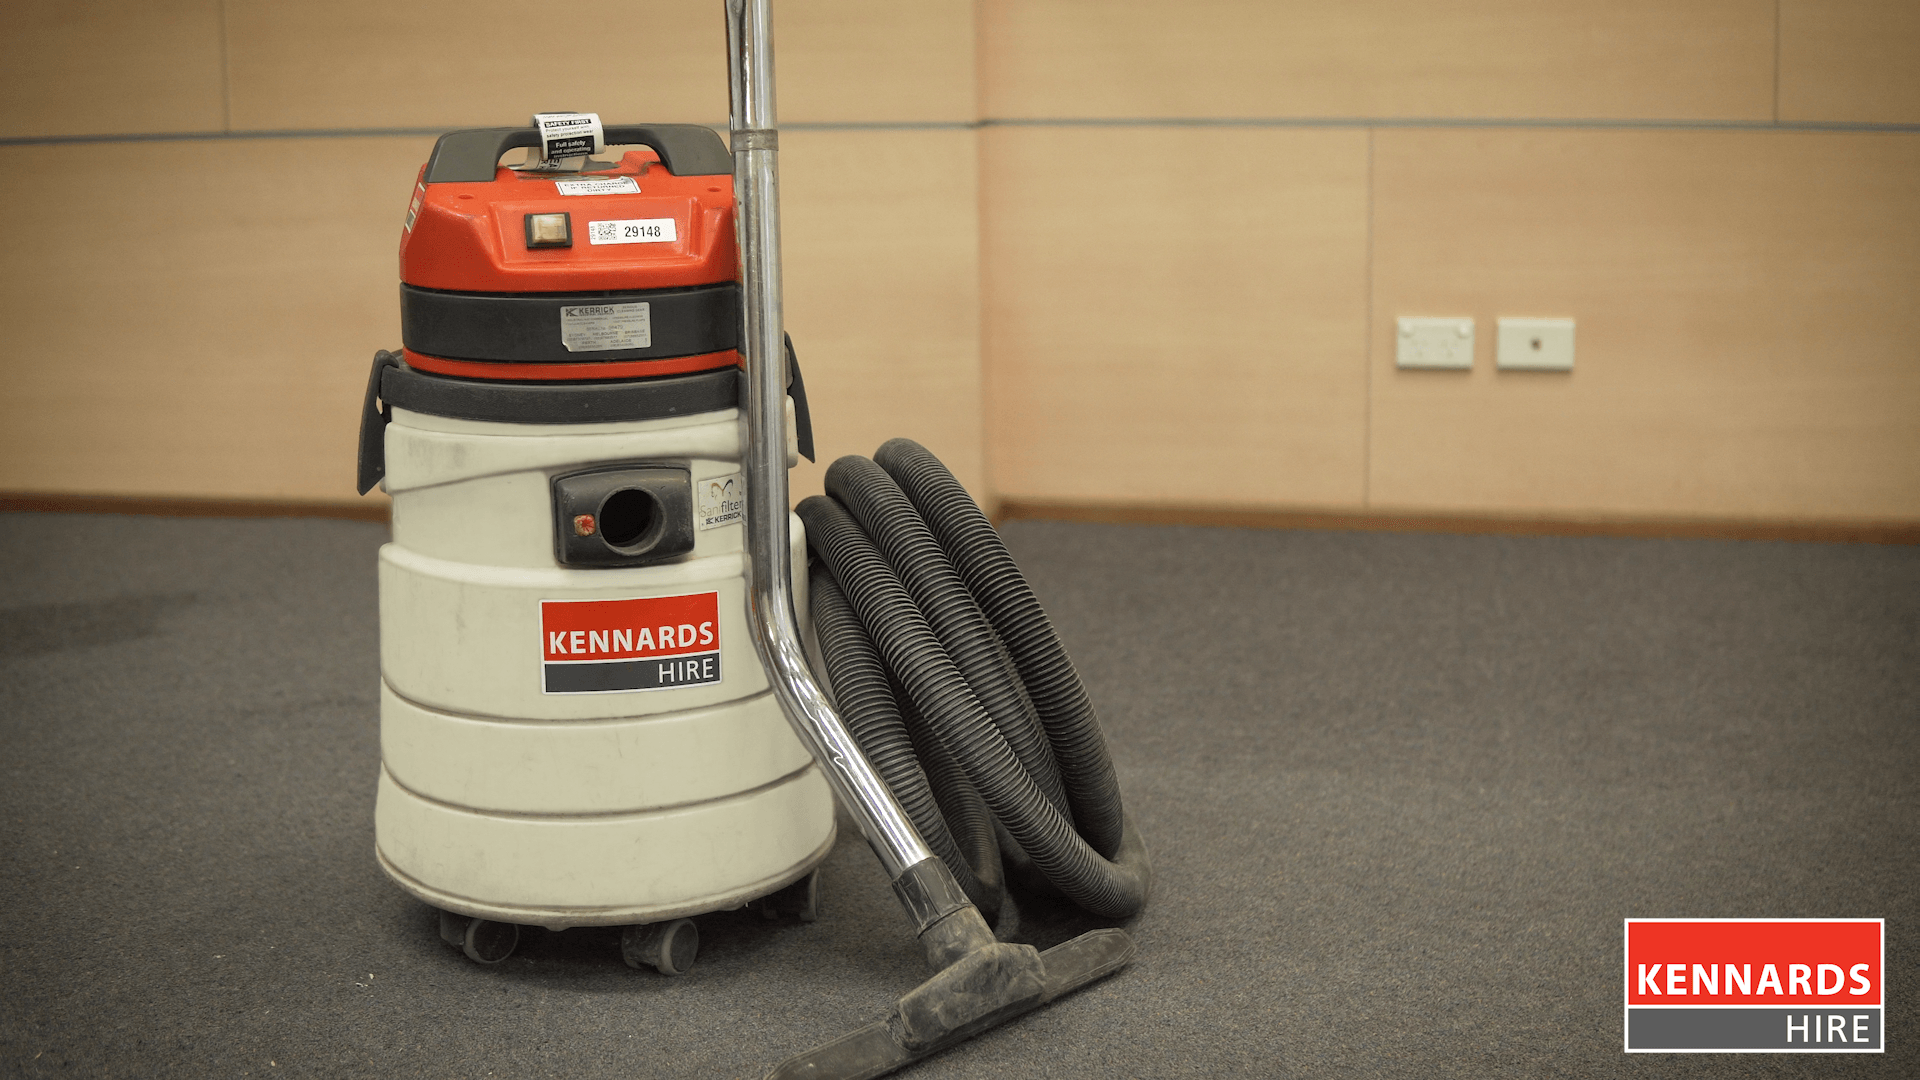 Do you need to use a wet-vac first?